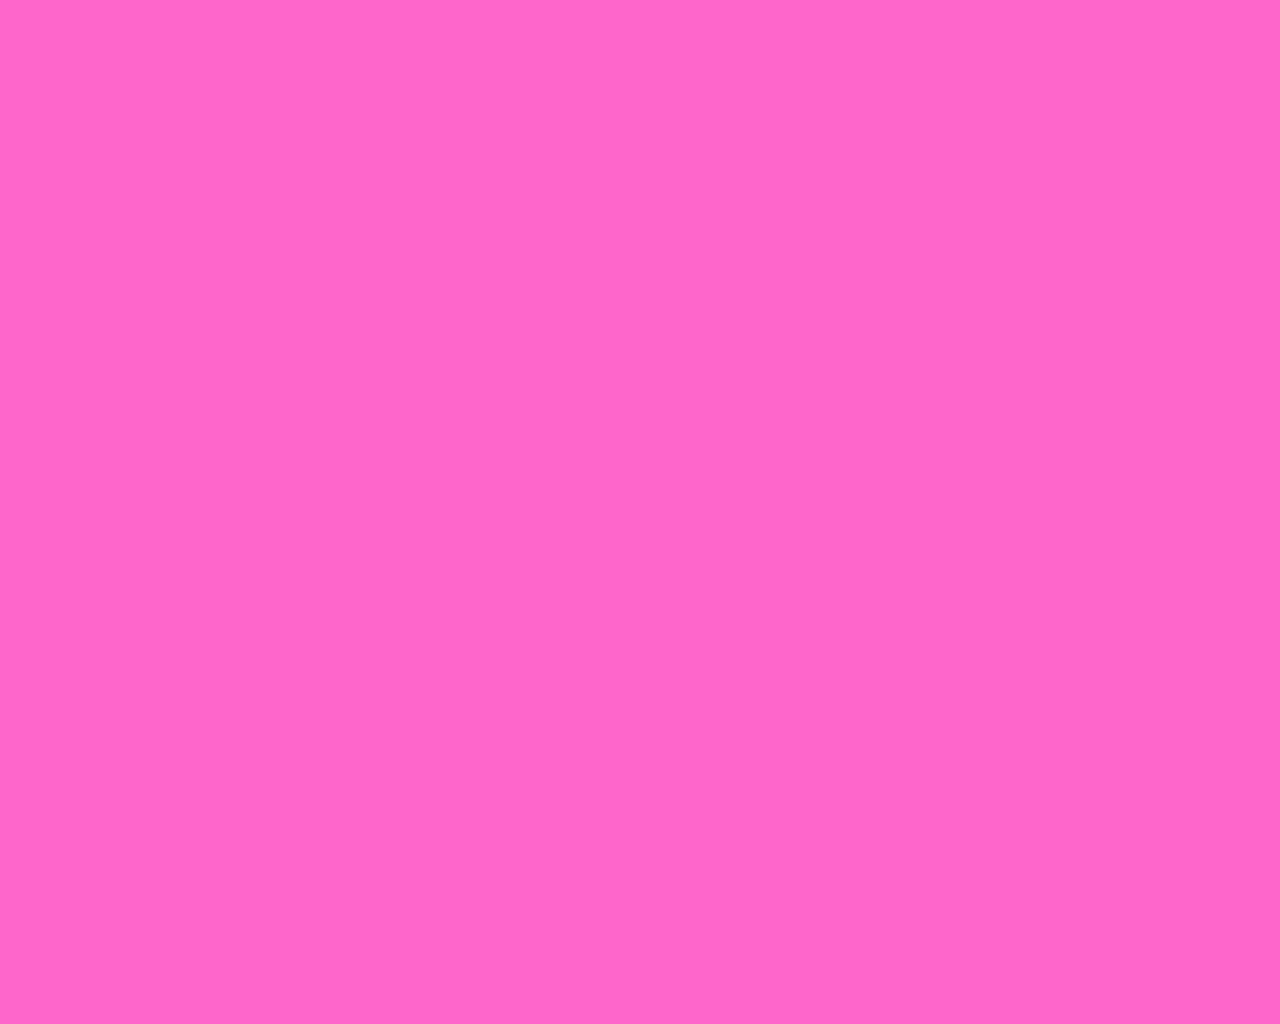 Pink solid color background view and download the below background 1280x1024